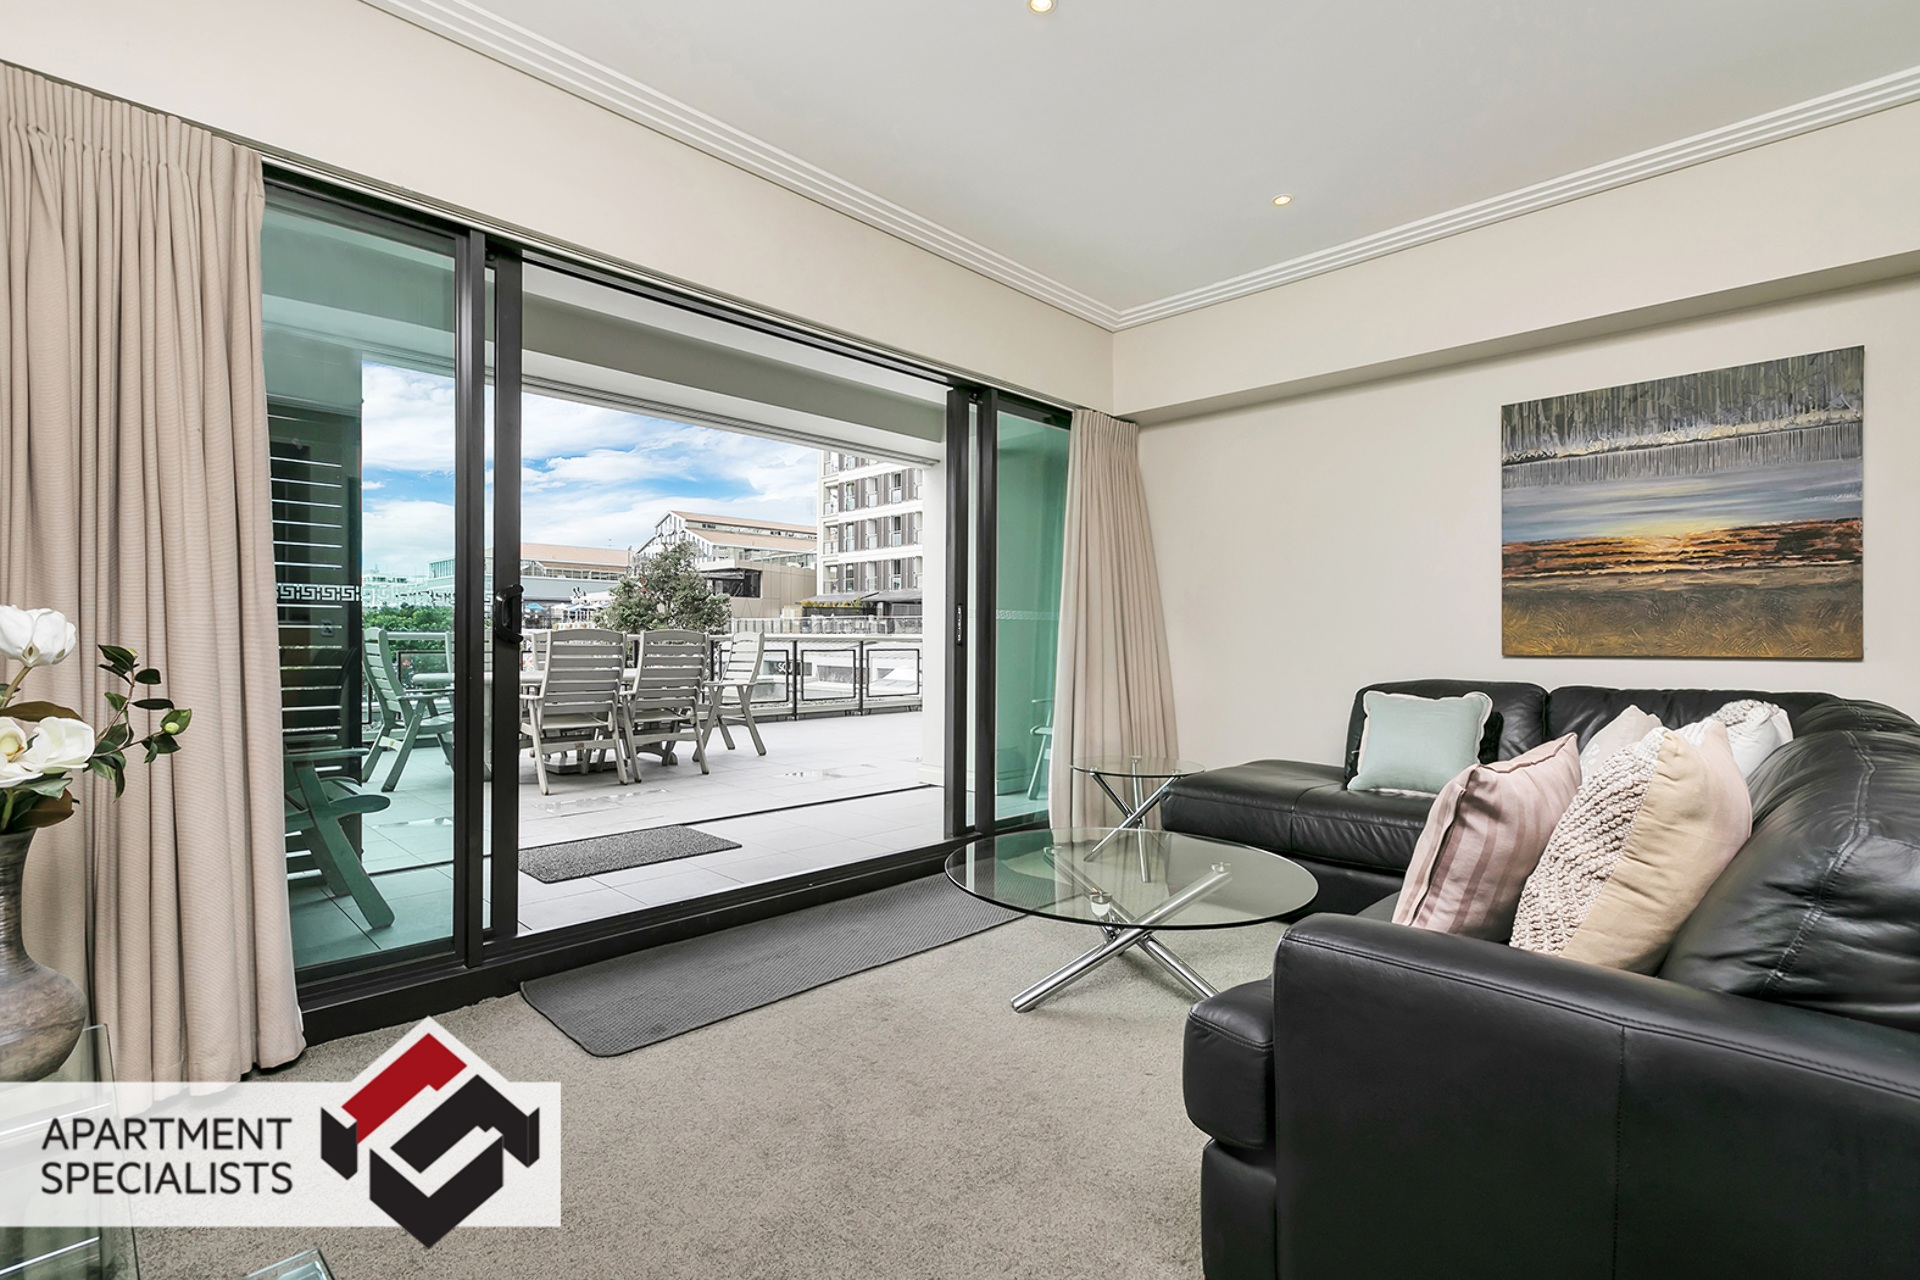 3 | 99 Customs Street West, City Centre | Apartment Specialists